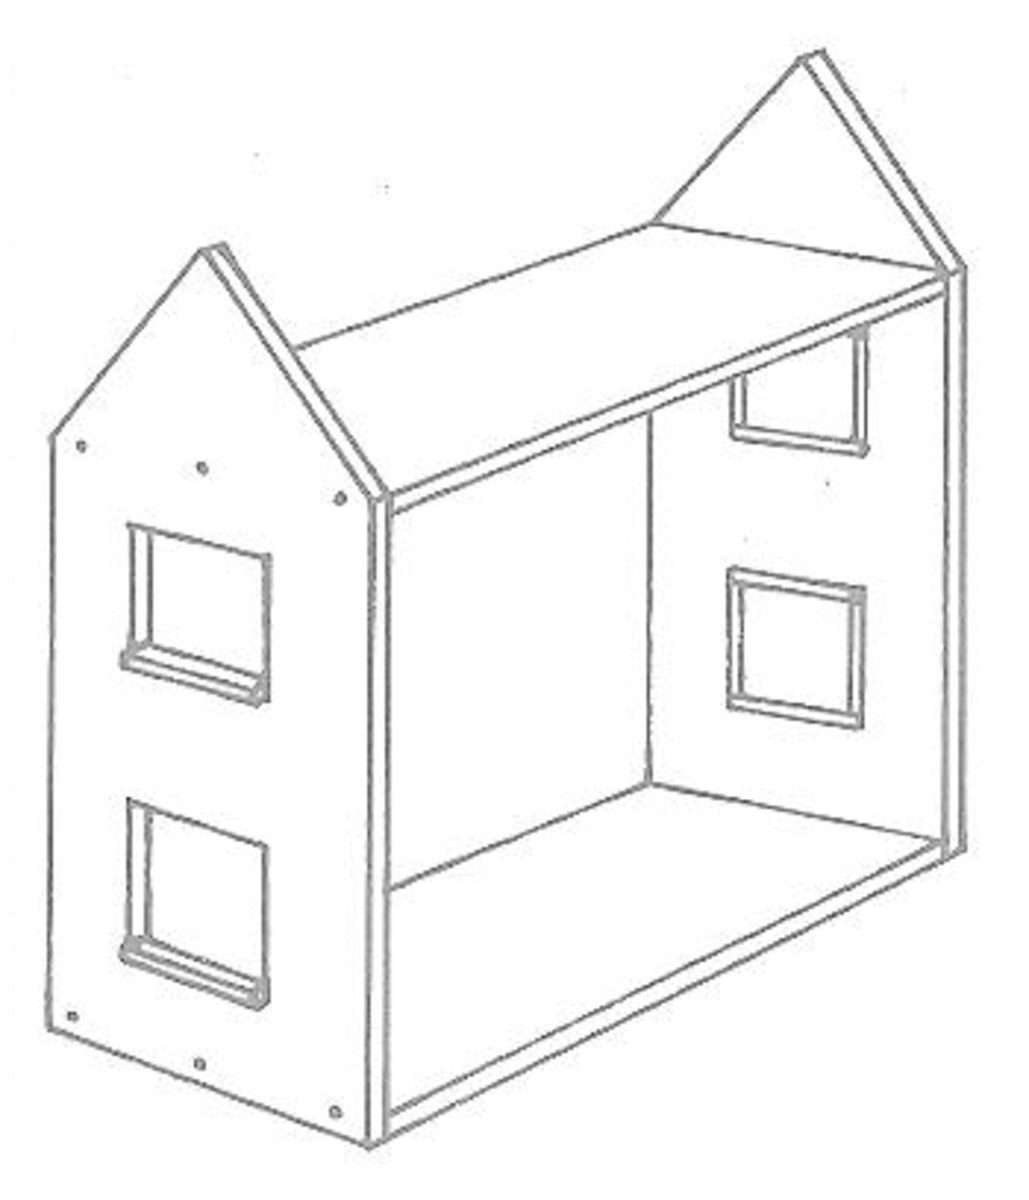 Figure 3 - Dollhouse Main Frame